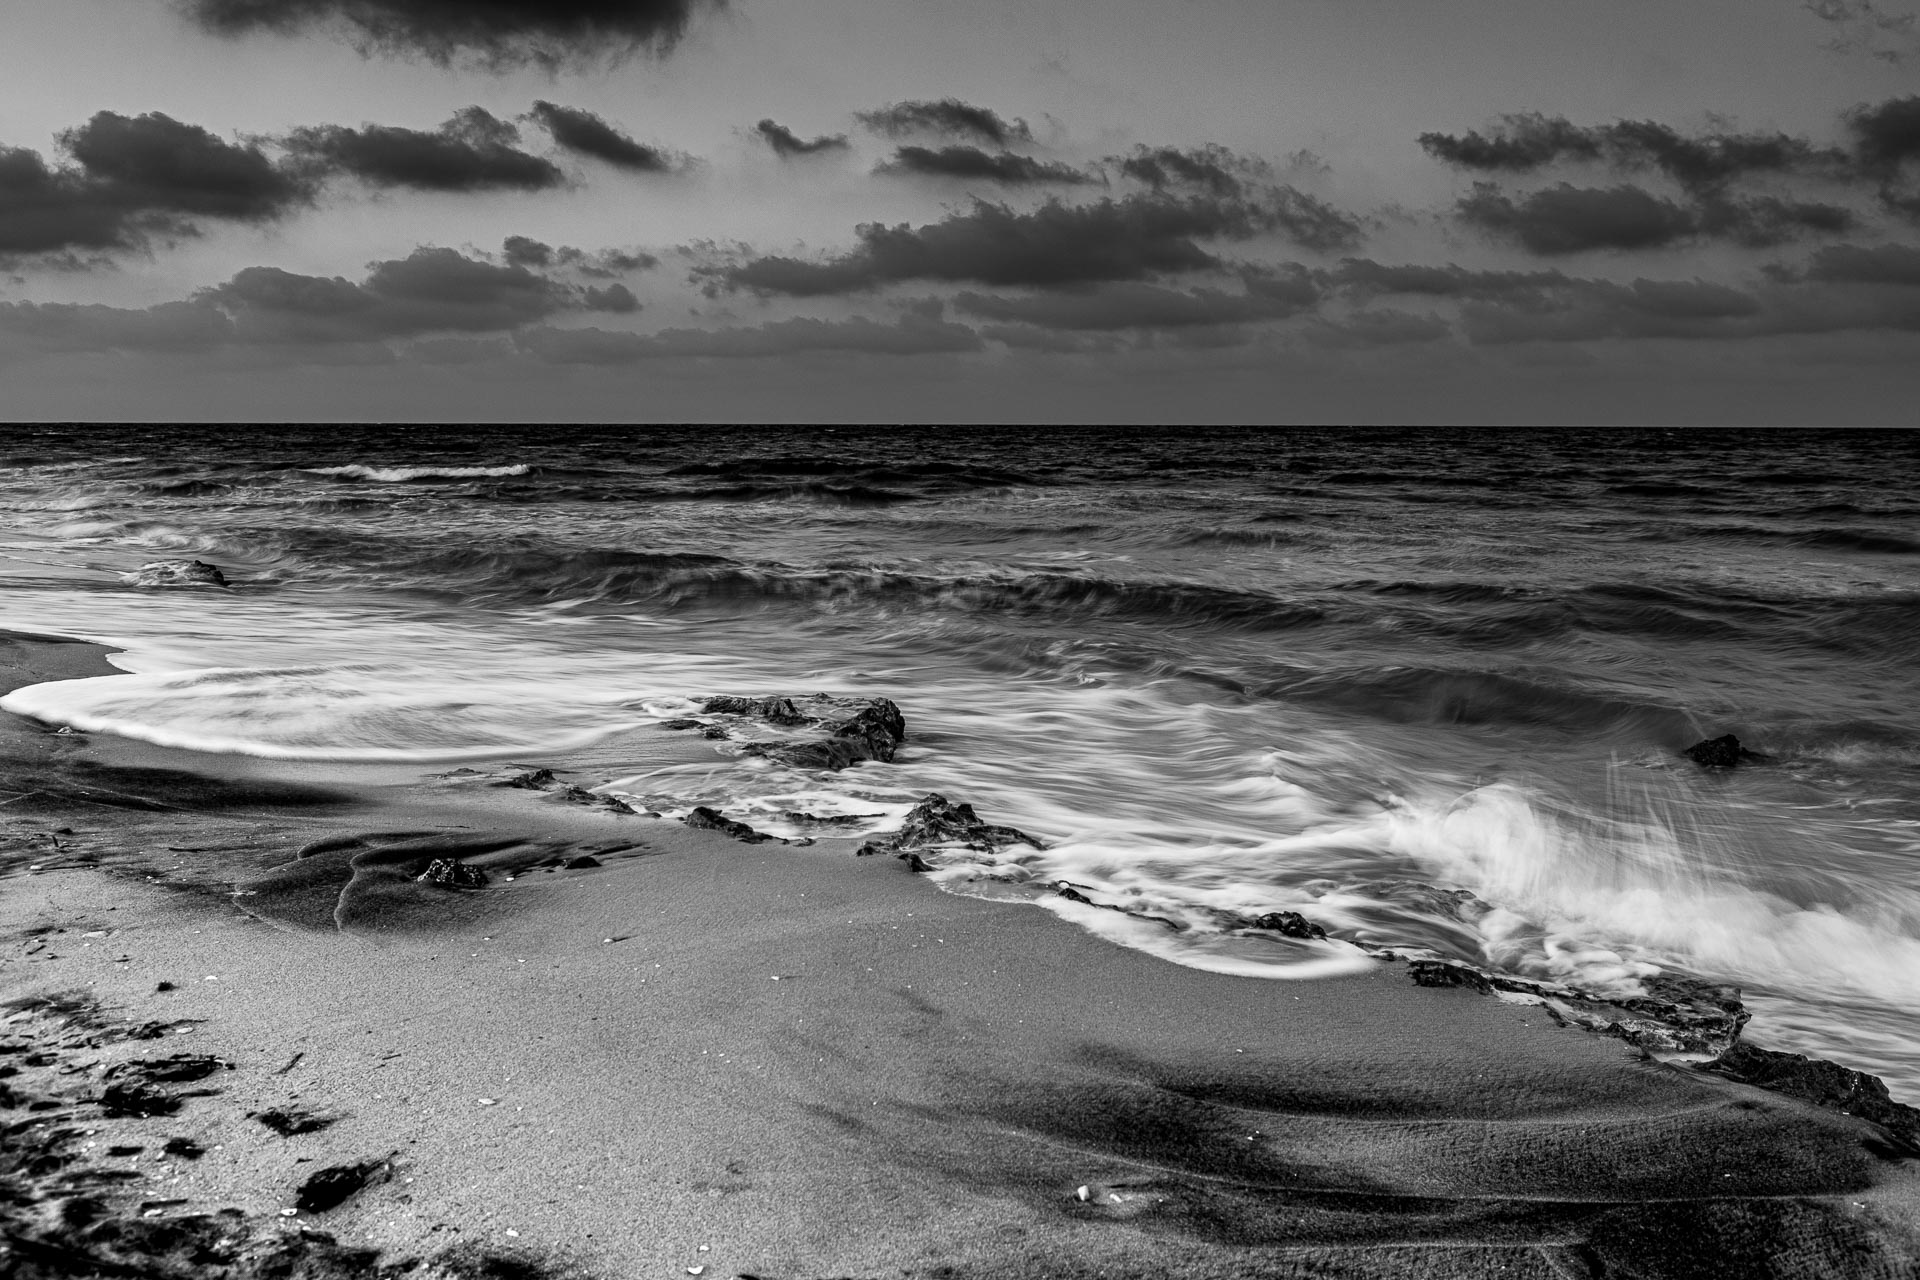 Mare d'inverno, black and white long exposure photography